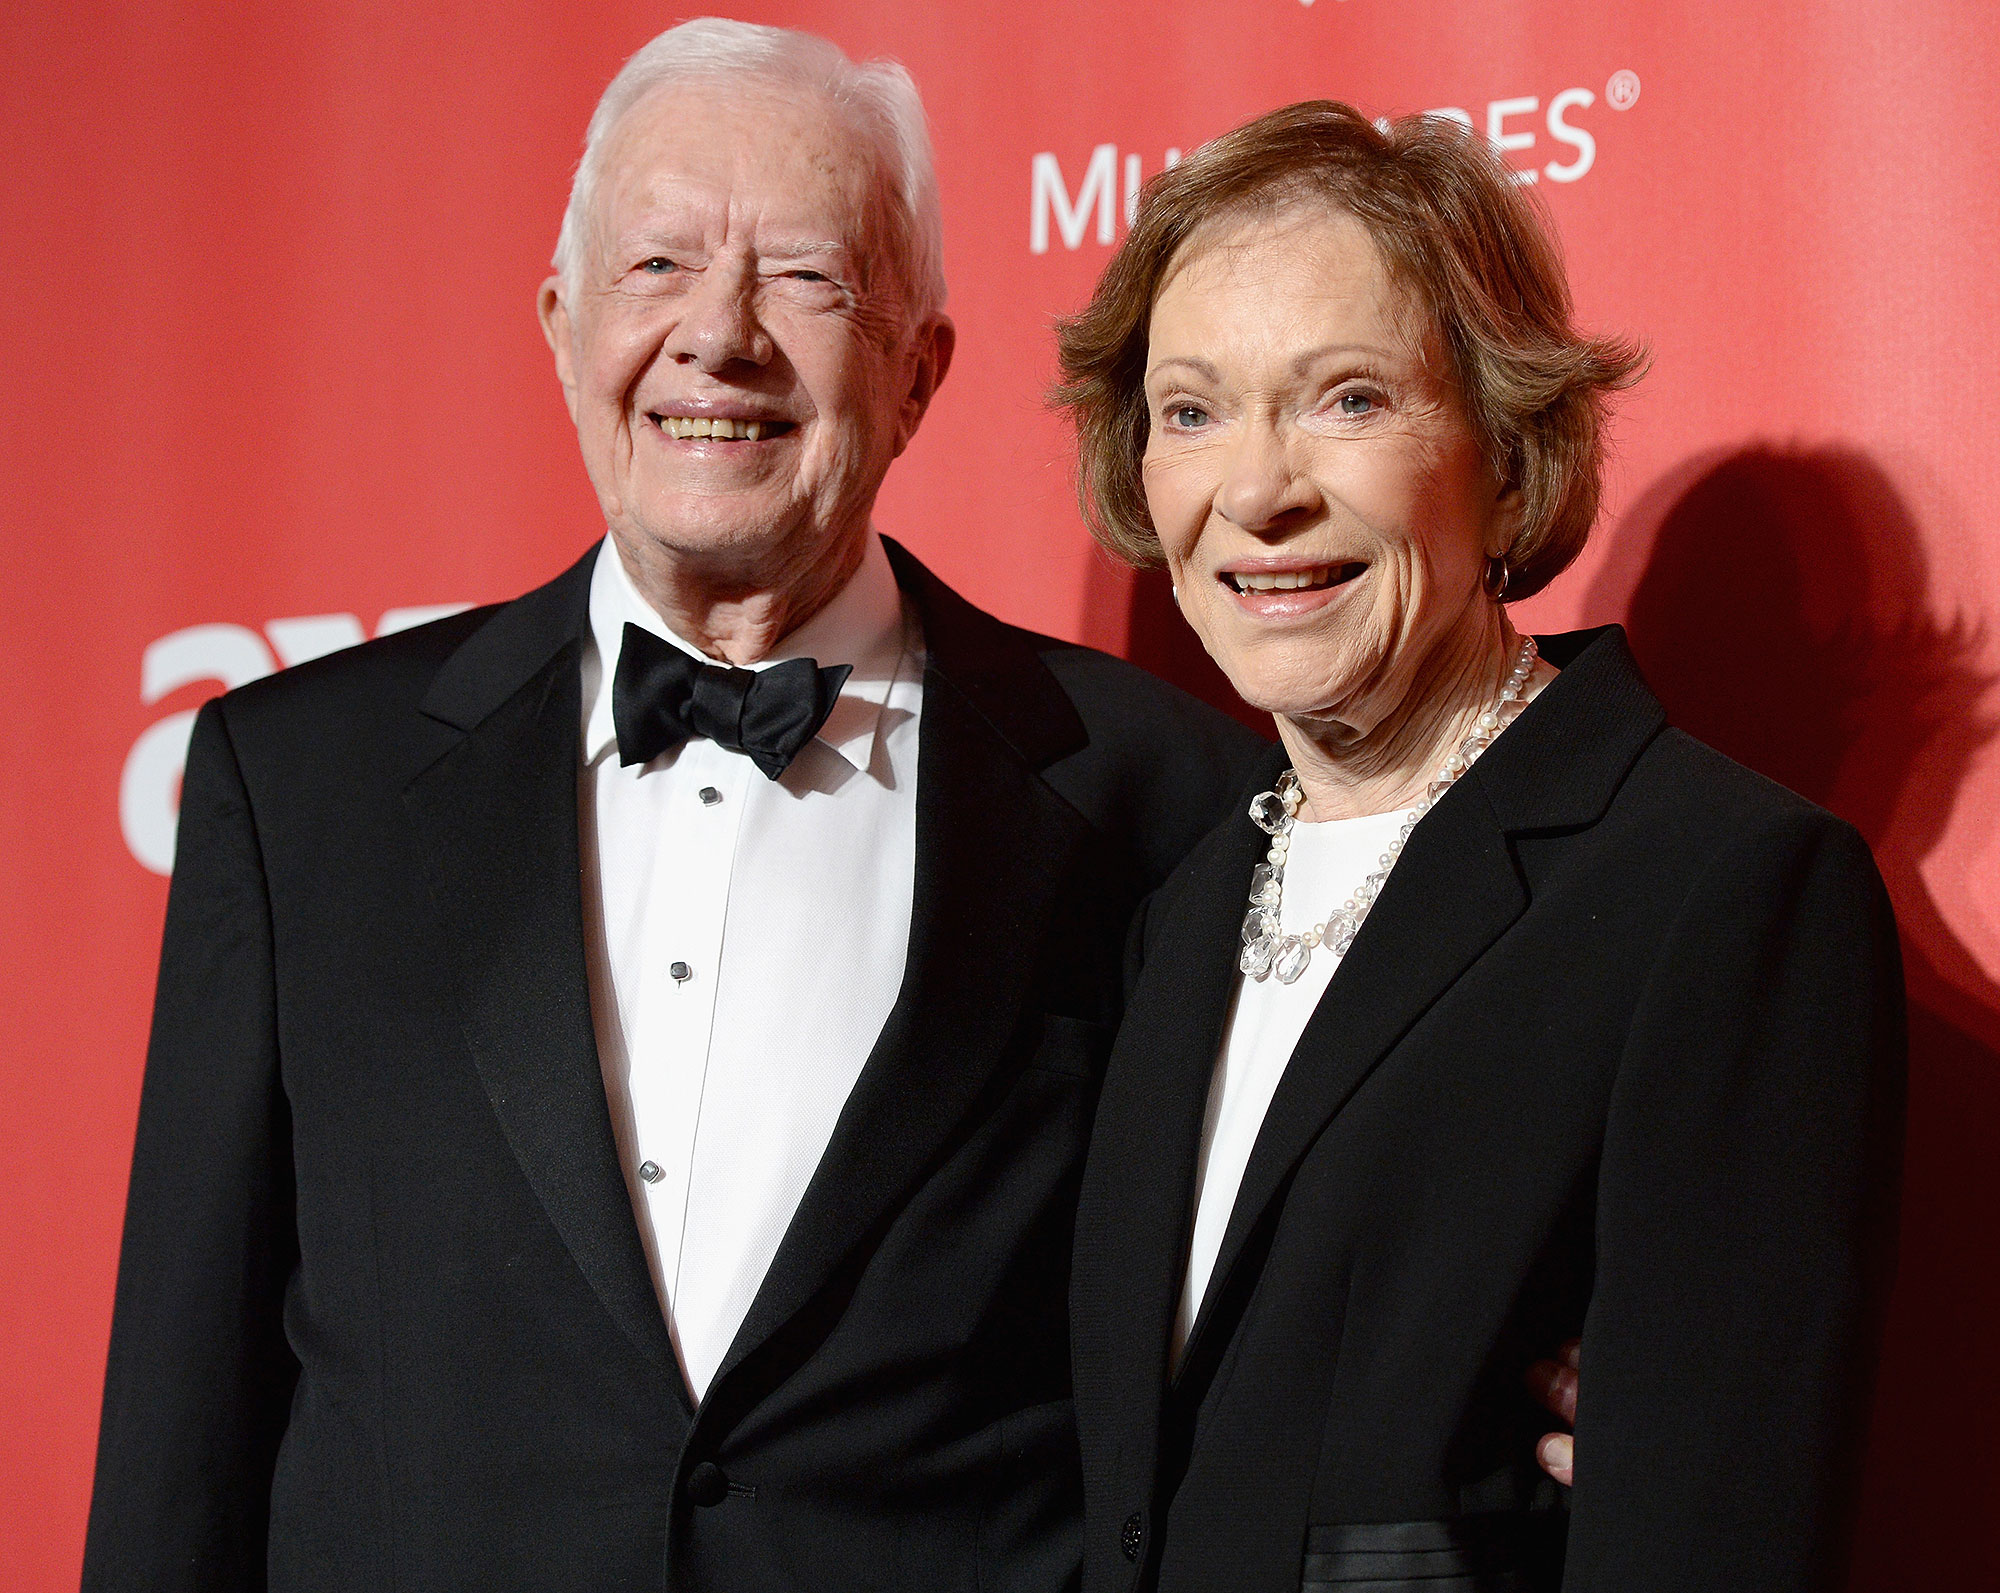 Jimmy Carter Details Frugal Life with Wife Rosalynn in $167K Georgia Home